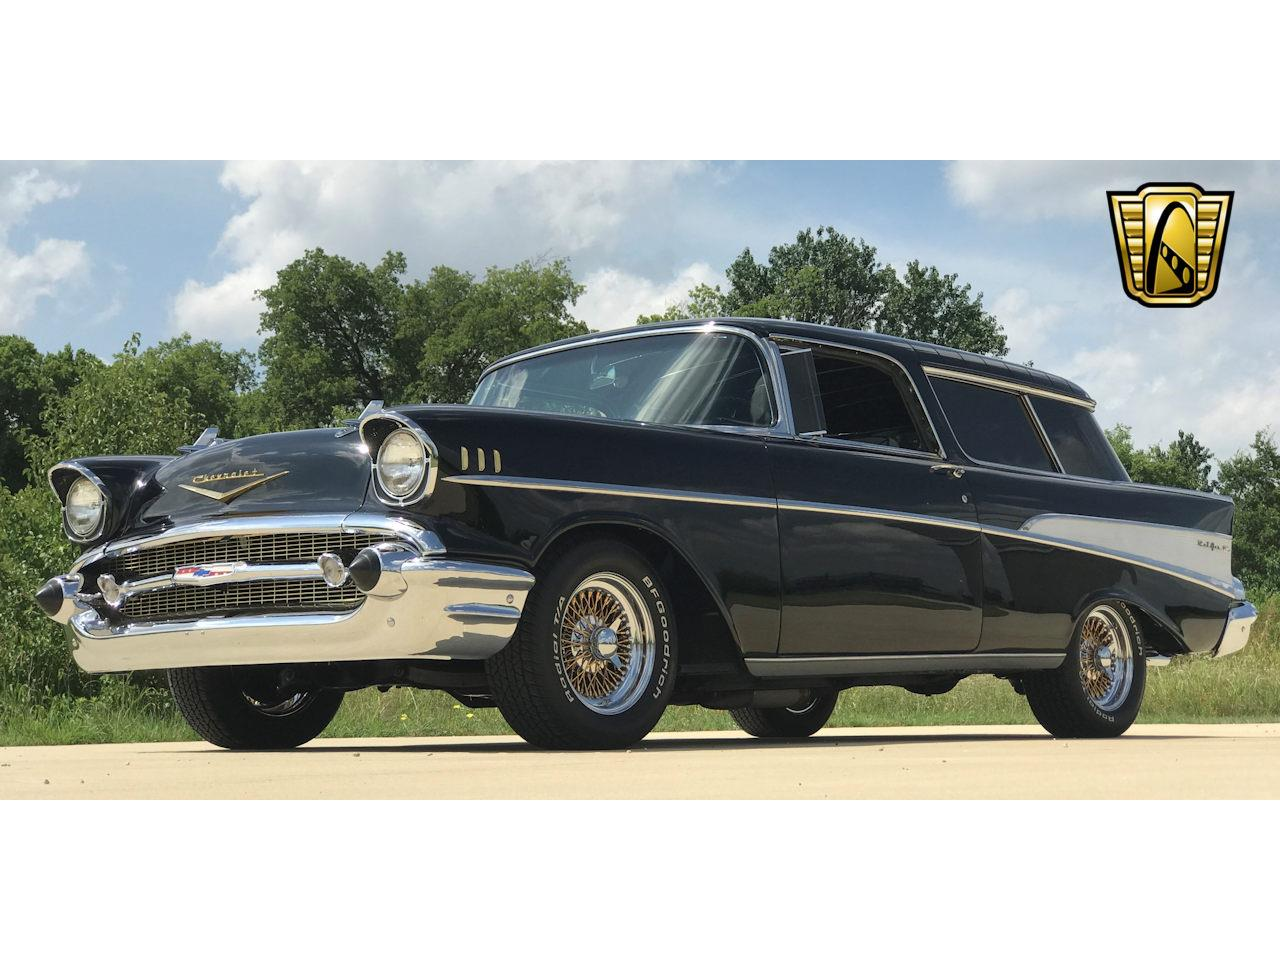 Large Picture of 1957 Chevrolet Nomad located in DFW Airport Texas - $59,000.00 - L7NG